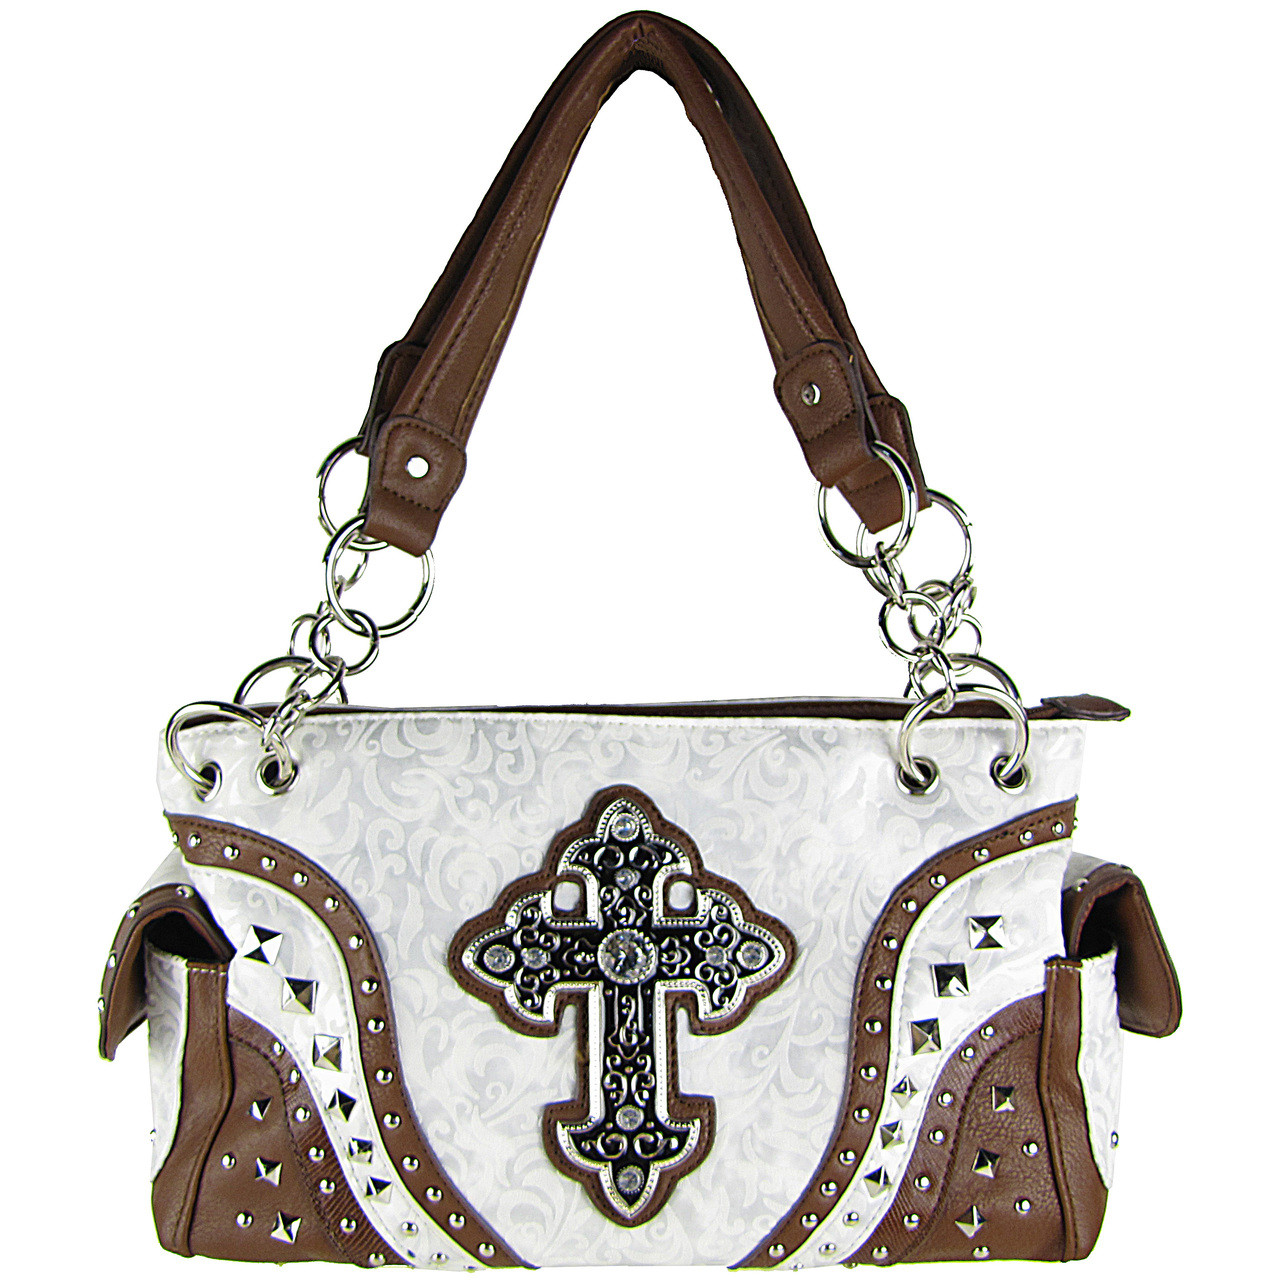 WHITE METALLIC PAISLEY STUDDED RHINESTONE CROSS LOOK SHOULDER HANDBAG HB1-90LCRWHT